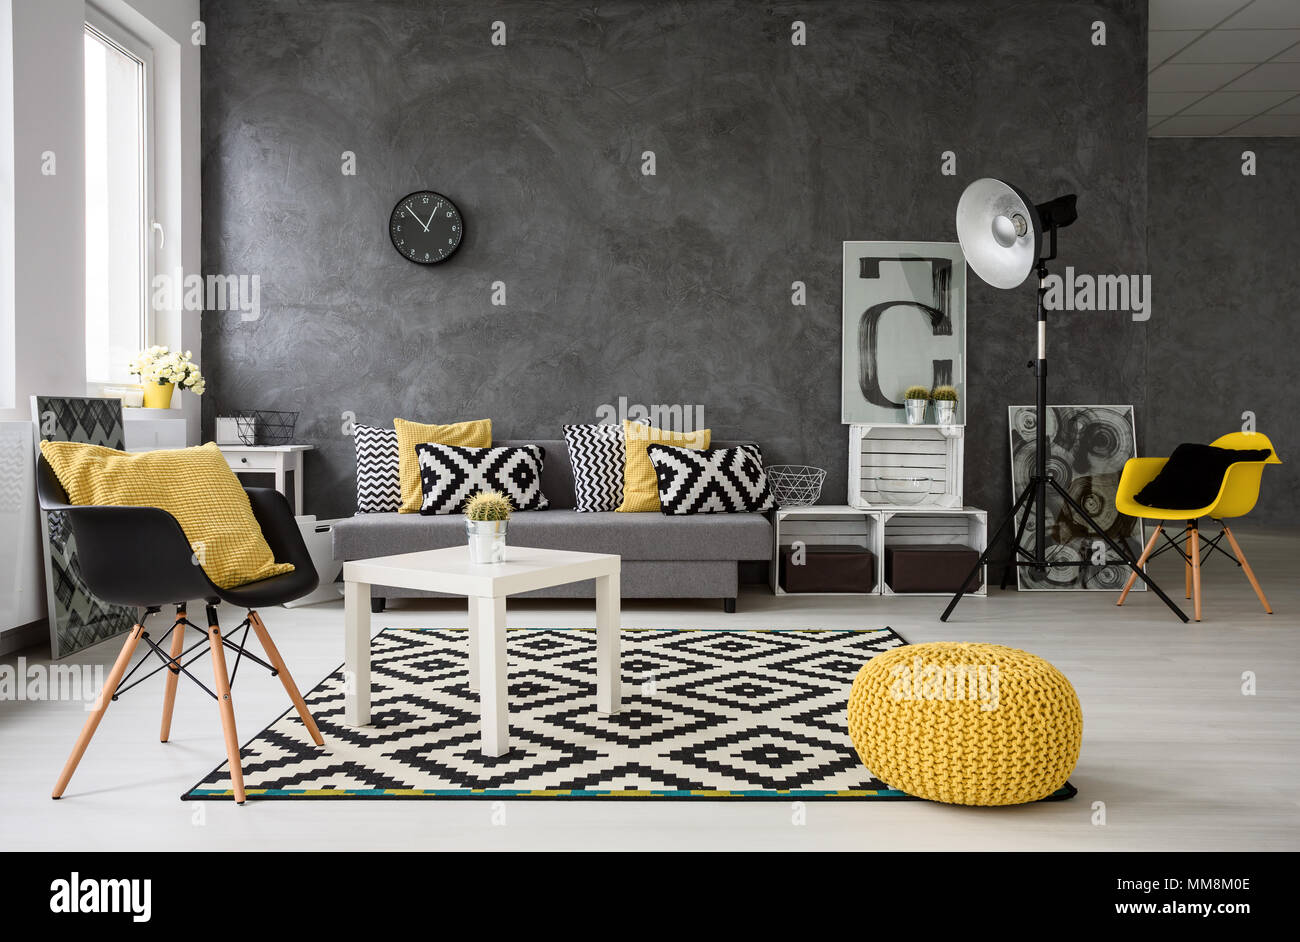 Spacious, Grey Living Room With Sofa, Chairs, Standing Lamp, Small  Coffee Table, Decorations In Yellow, Black And White